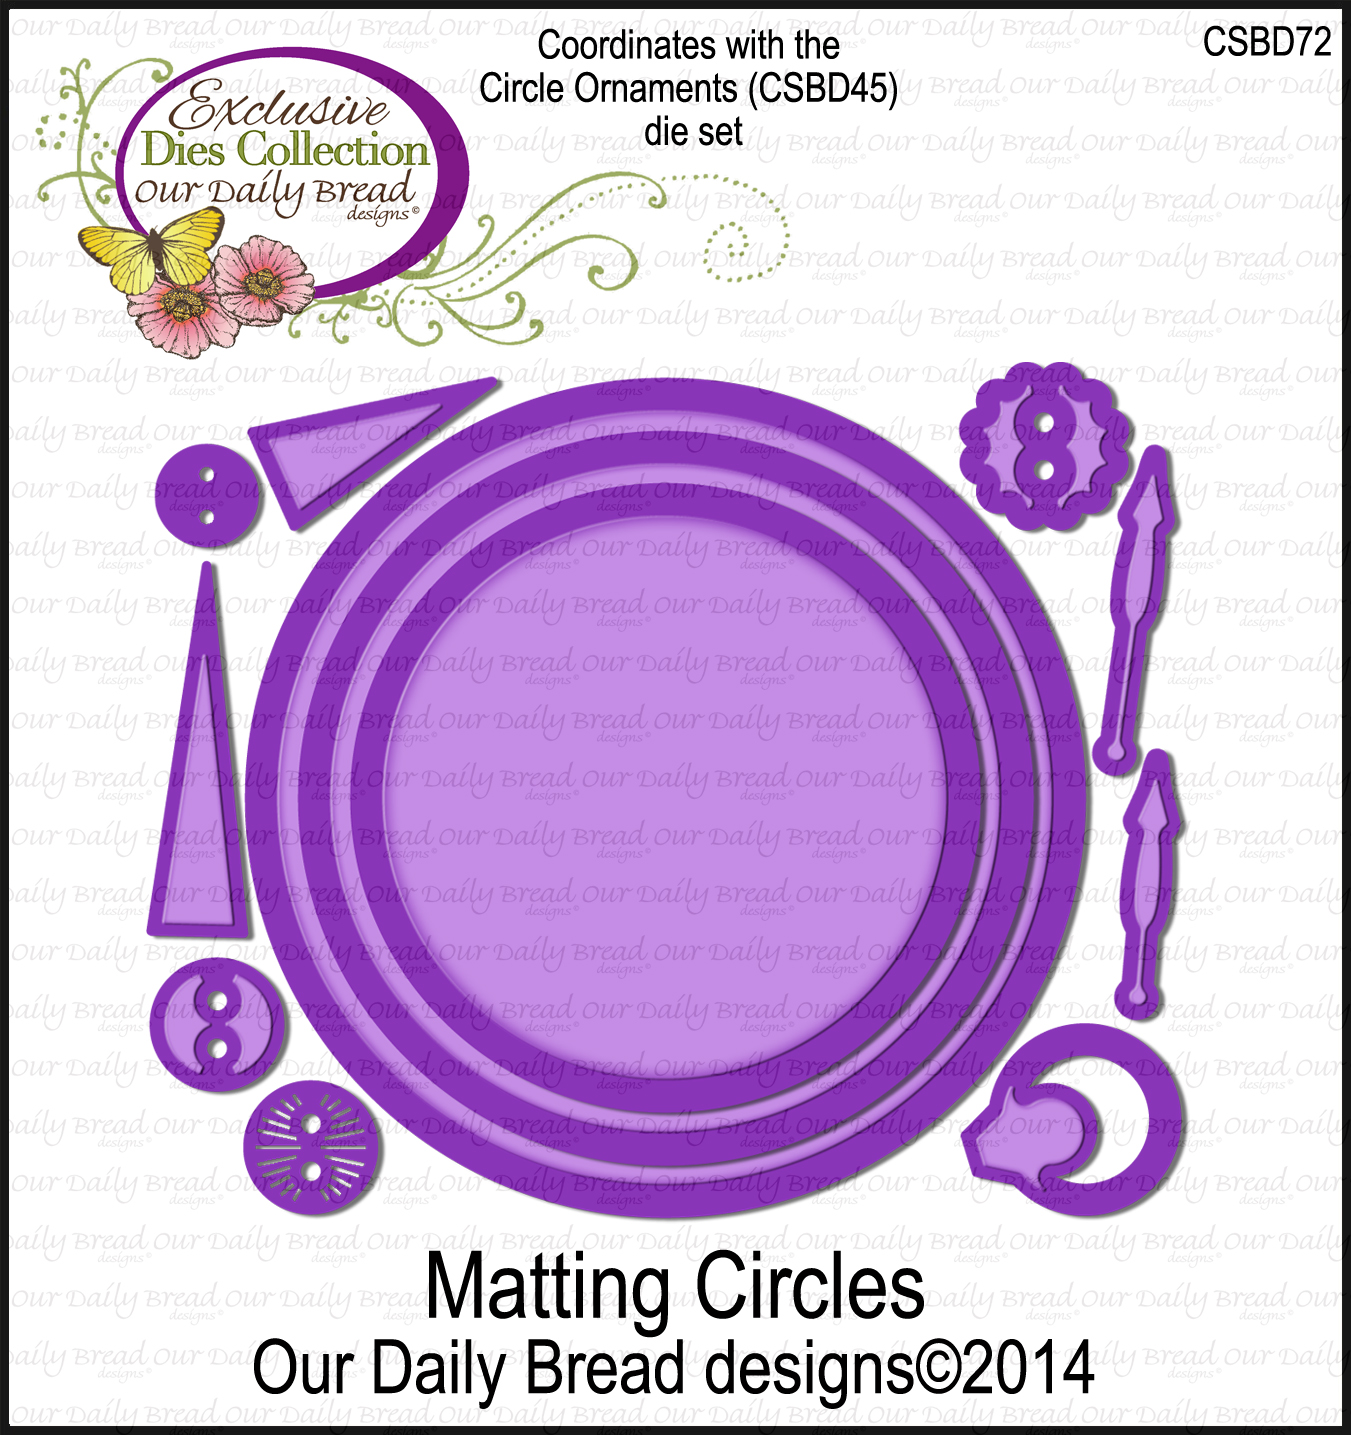 Our Daily Bread Designs Custom Matting Circles Dies